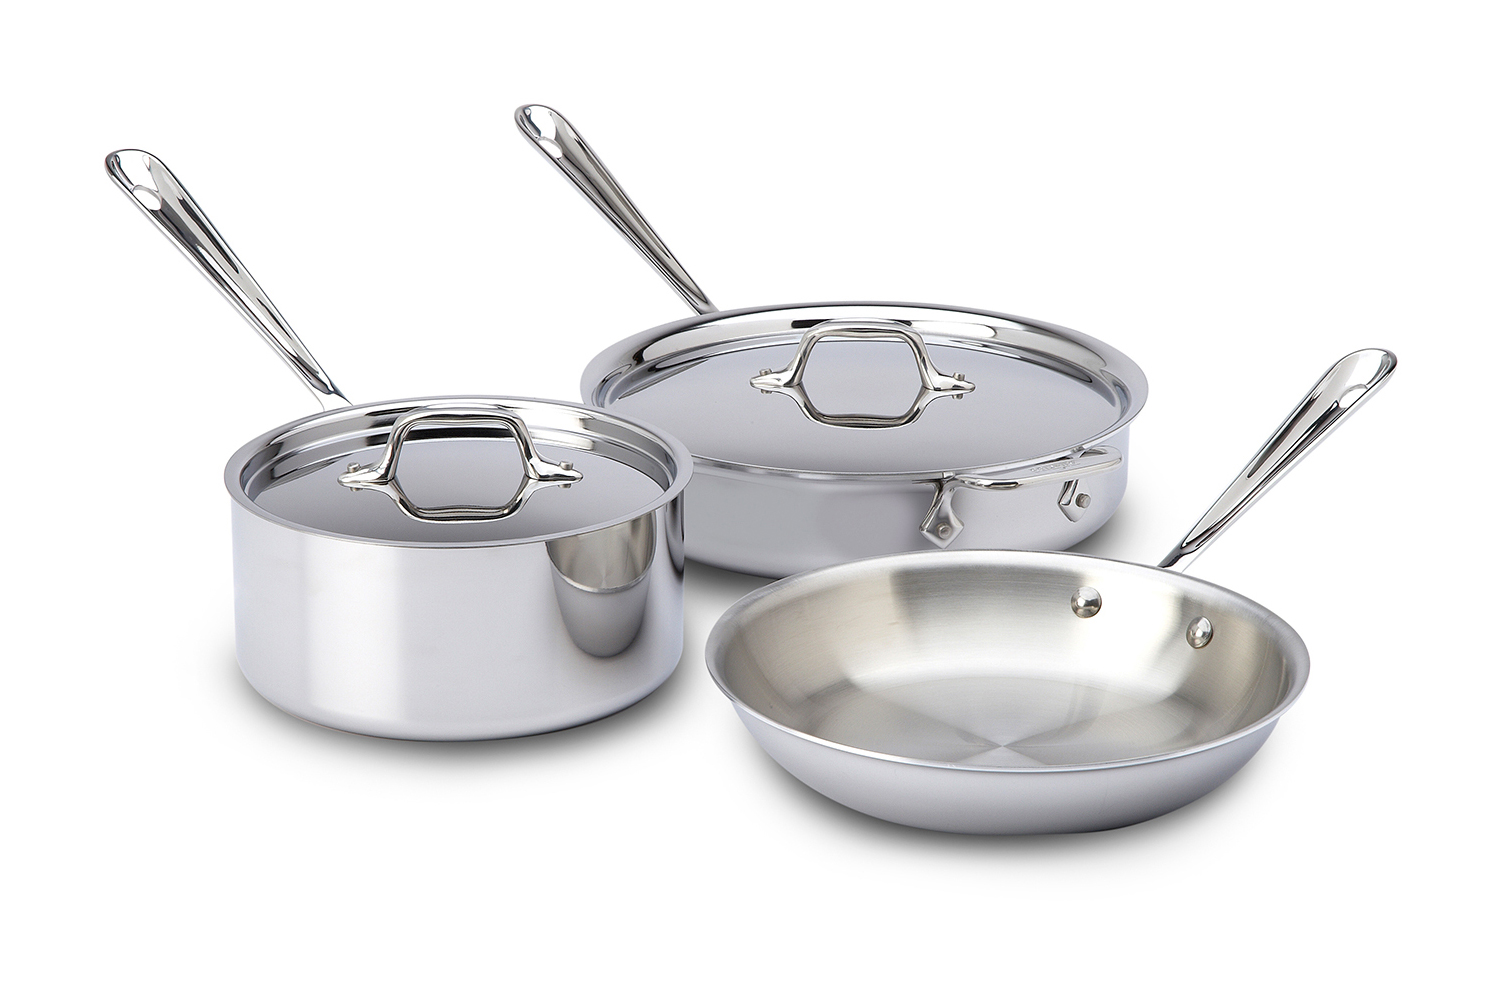 All-Clad d3 Tri-Ply Stainless Steel 5 Piece Cookware Set